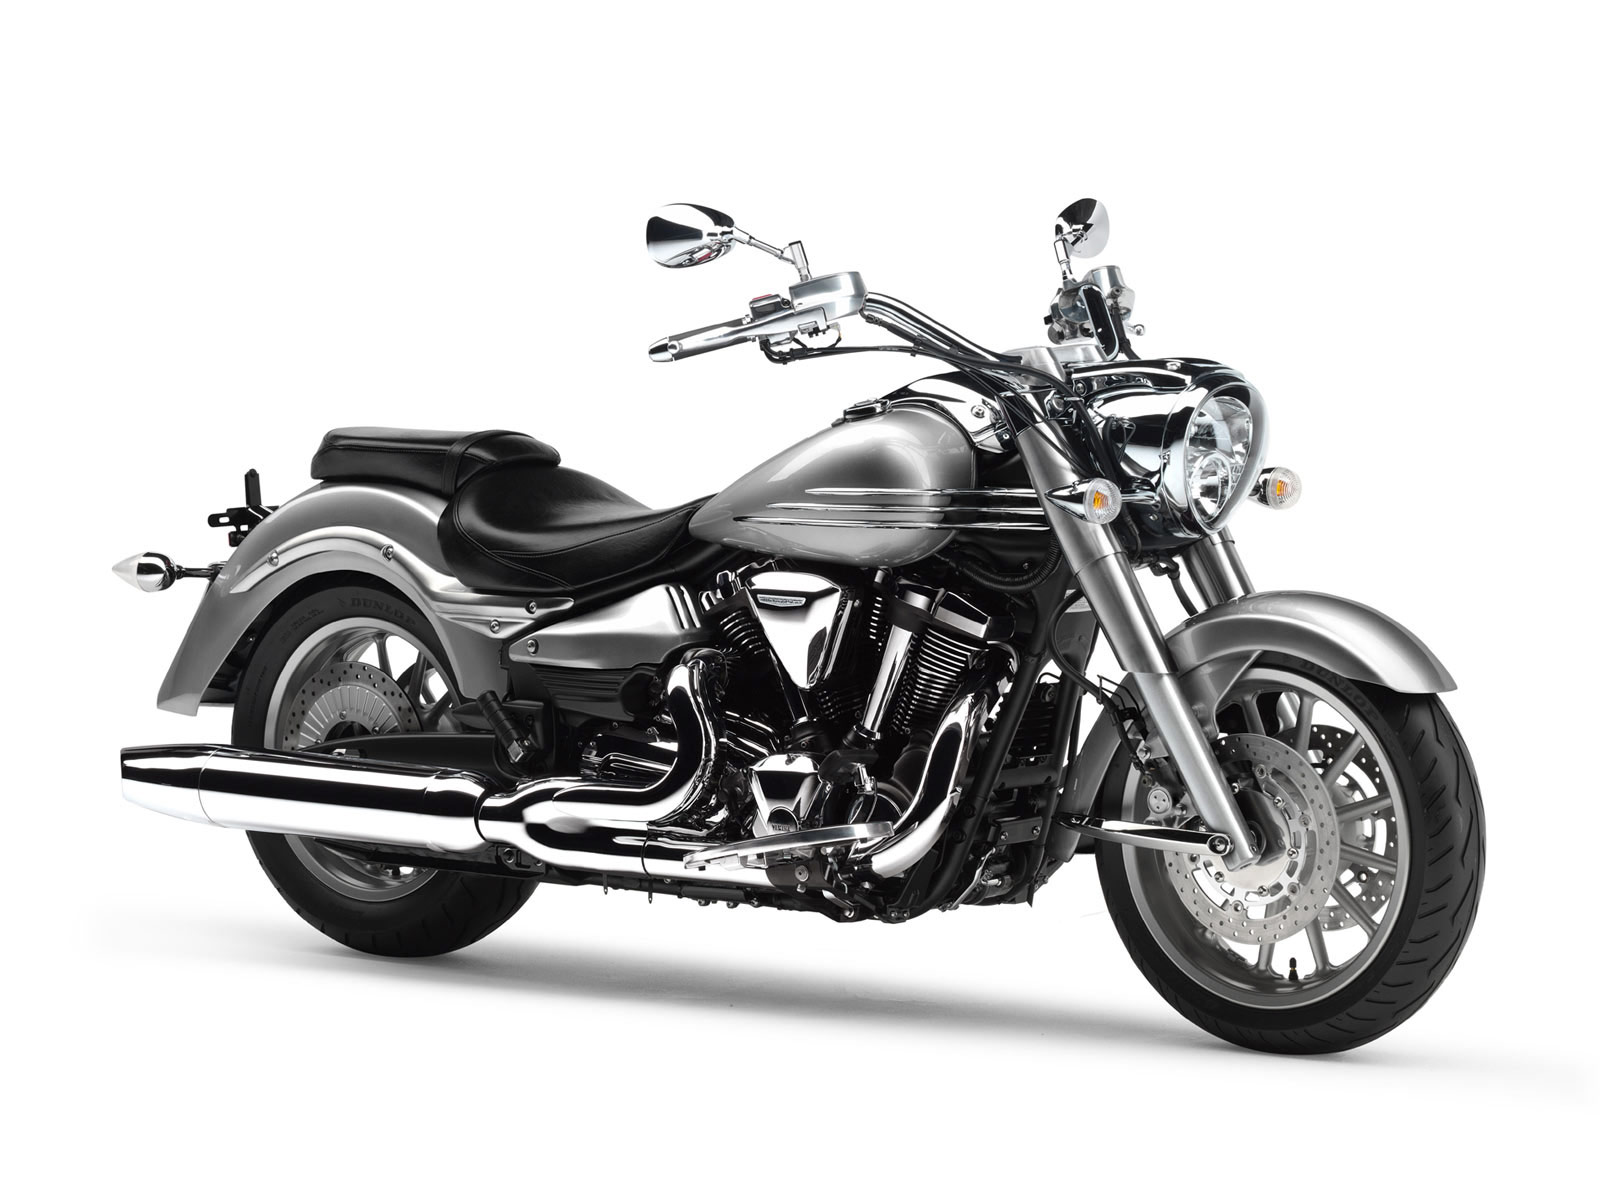 Yamaha Xv 1900 A Midnight Star 2007 Pictures